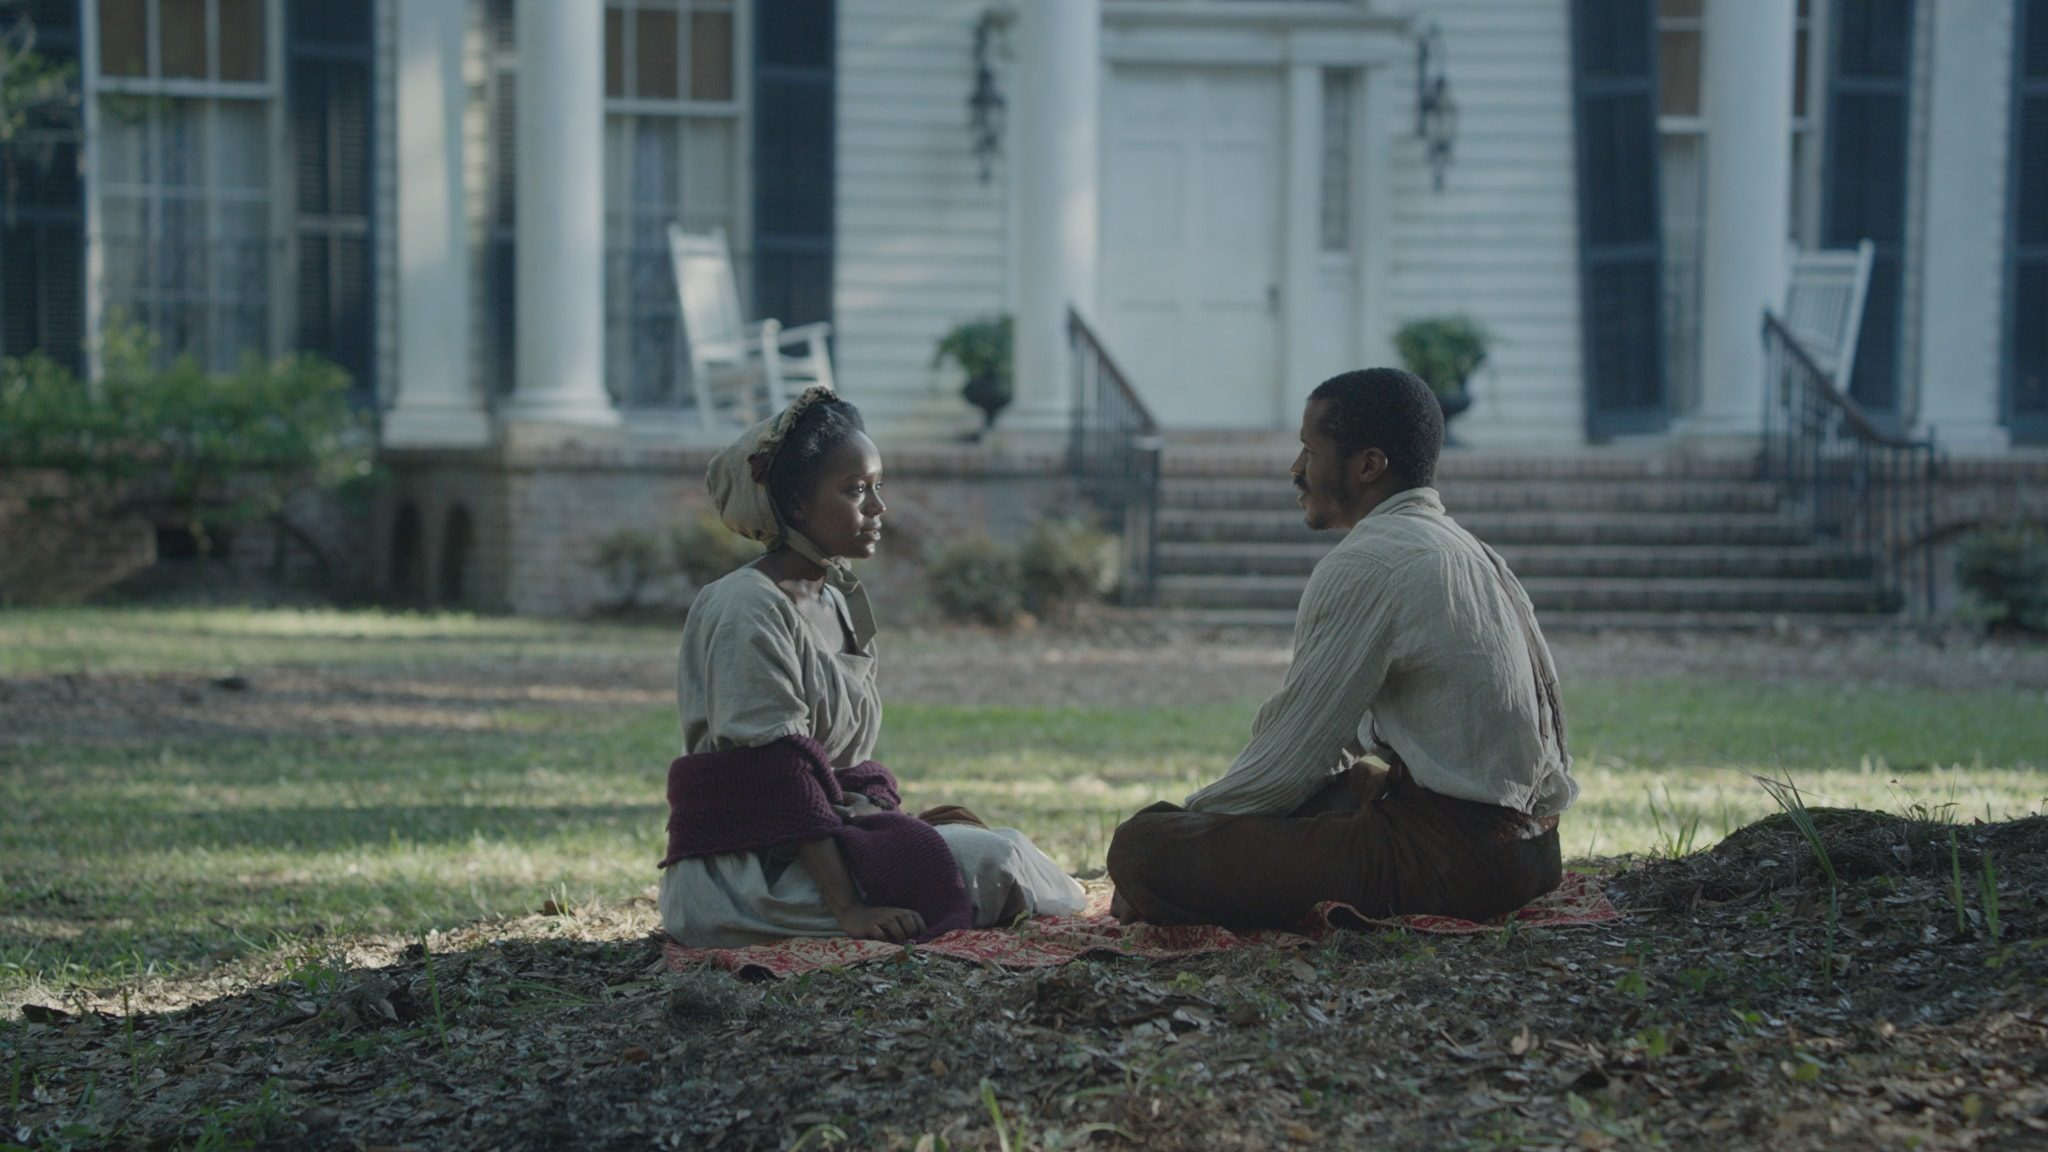 The Birth of a Nation image 1